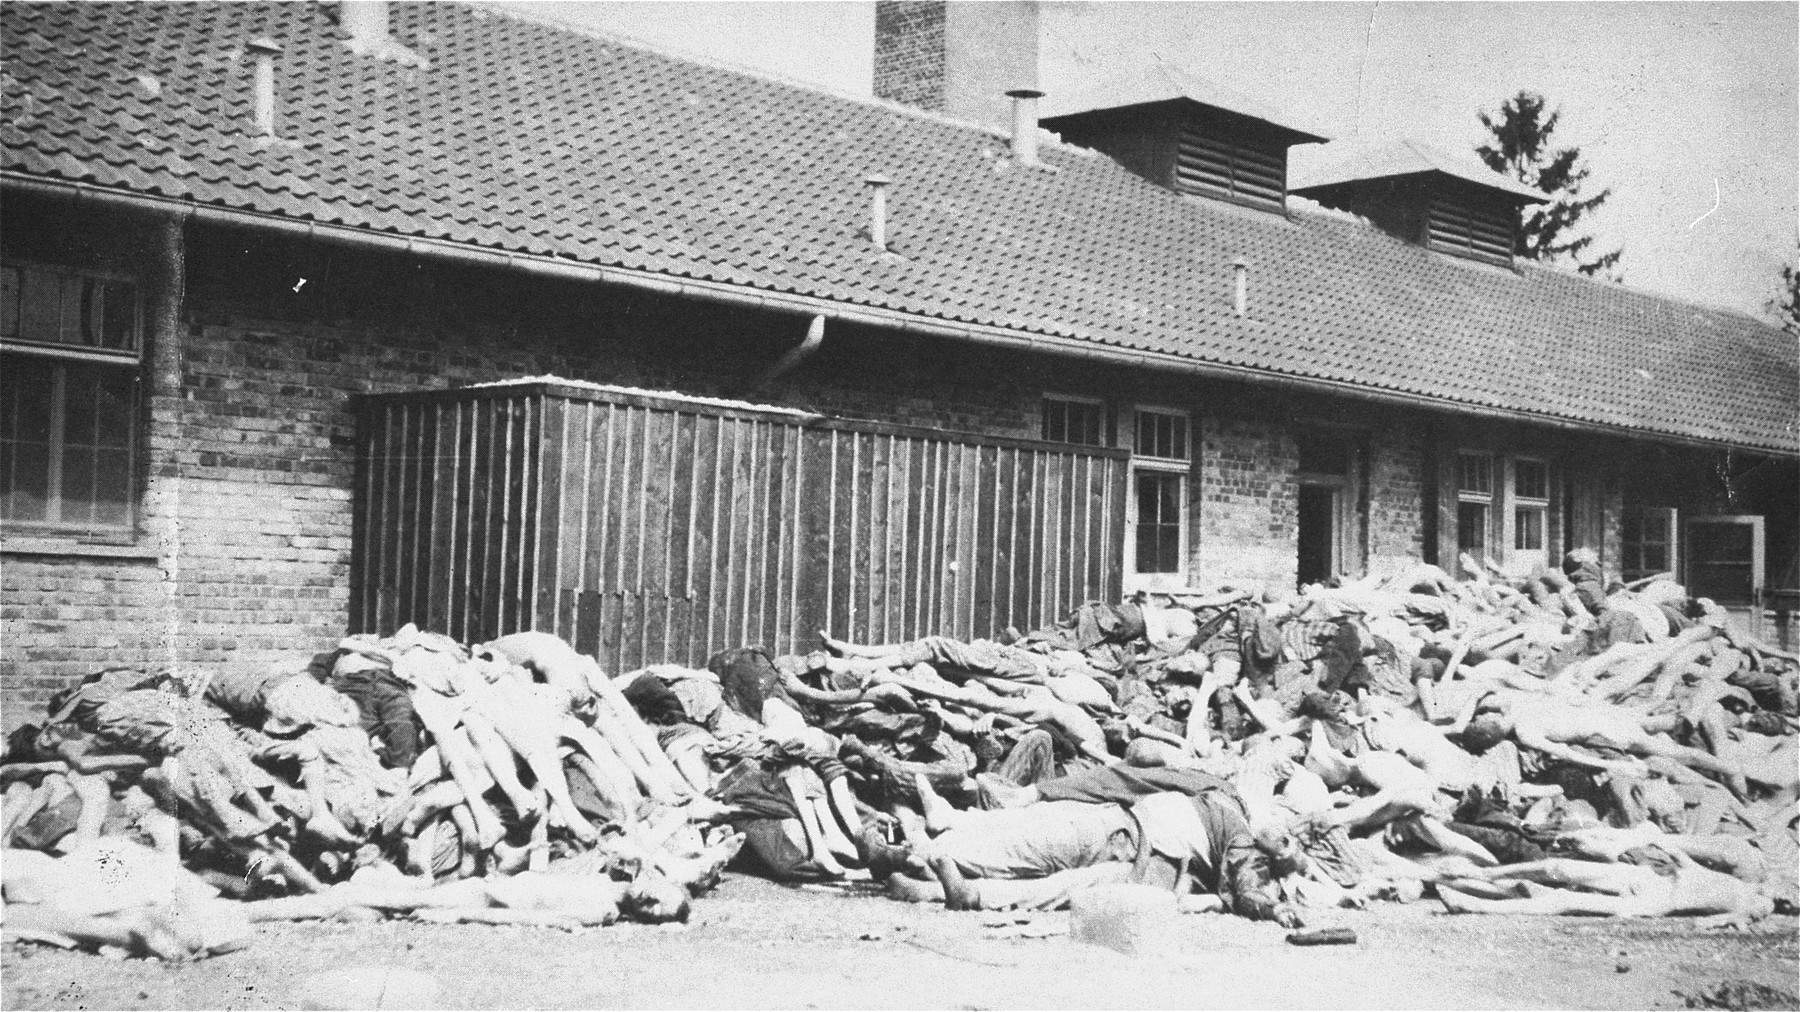 Corpses stacked outside of the crematorium.